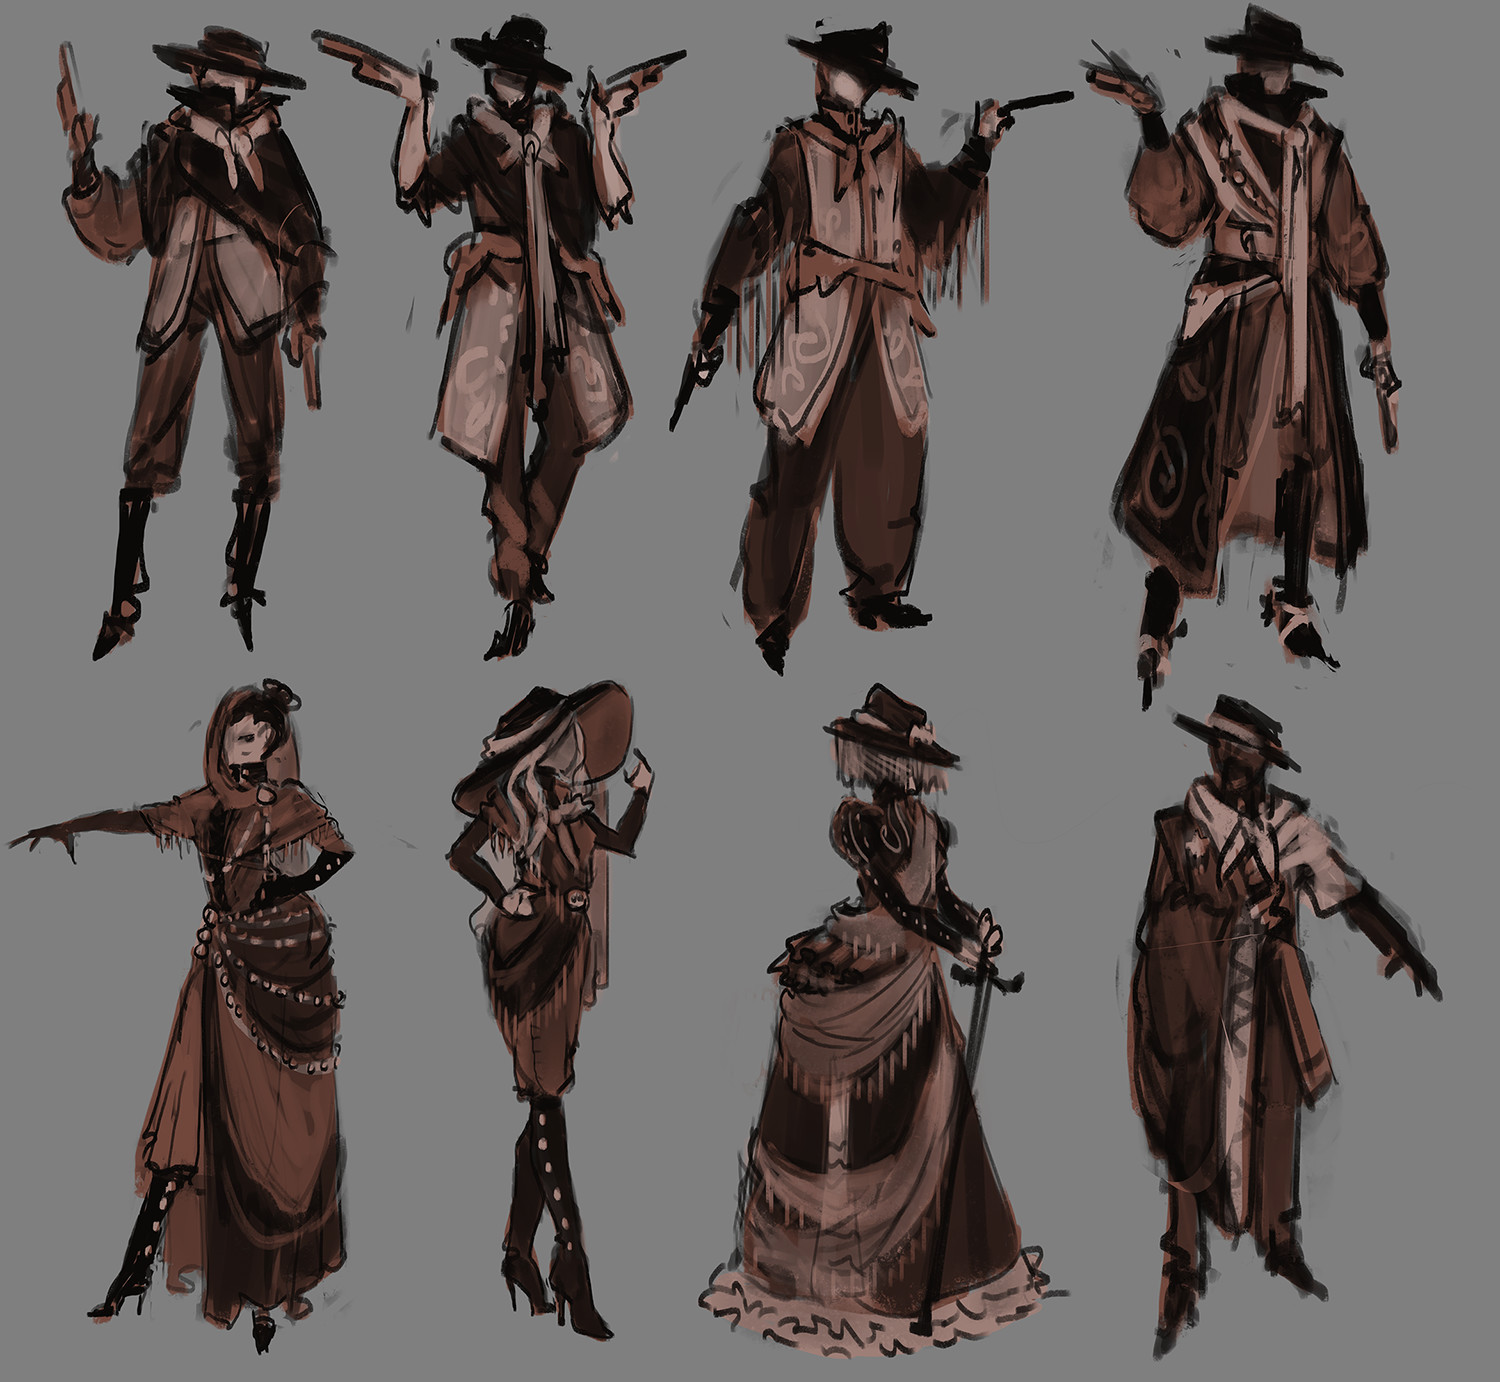 Early thumbnails sketches of characters.